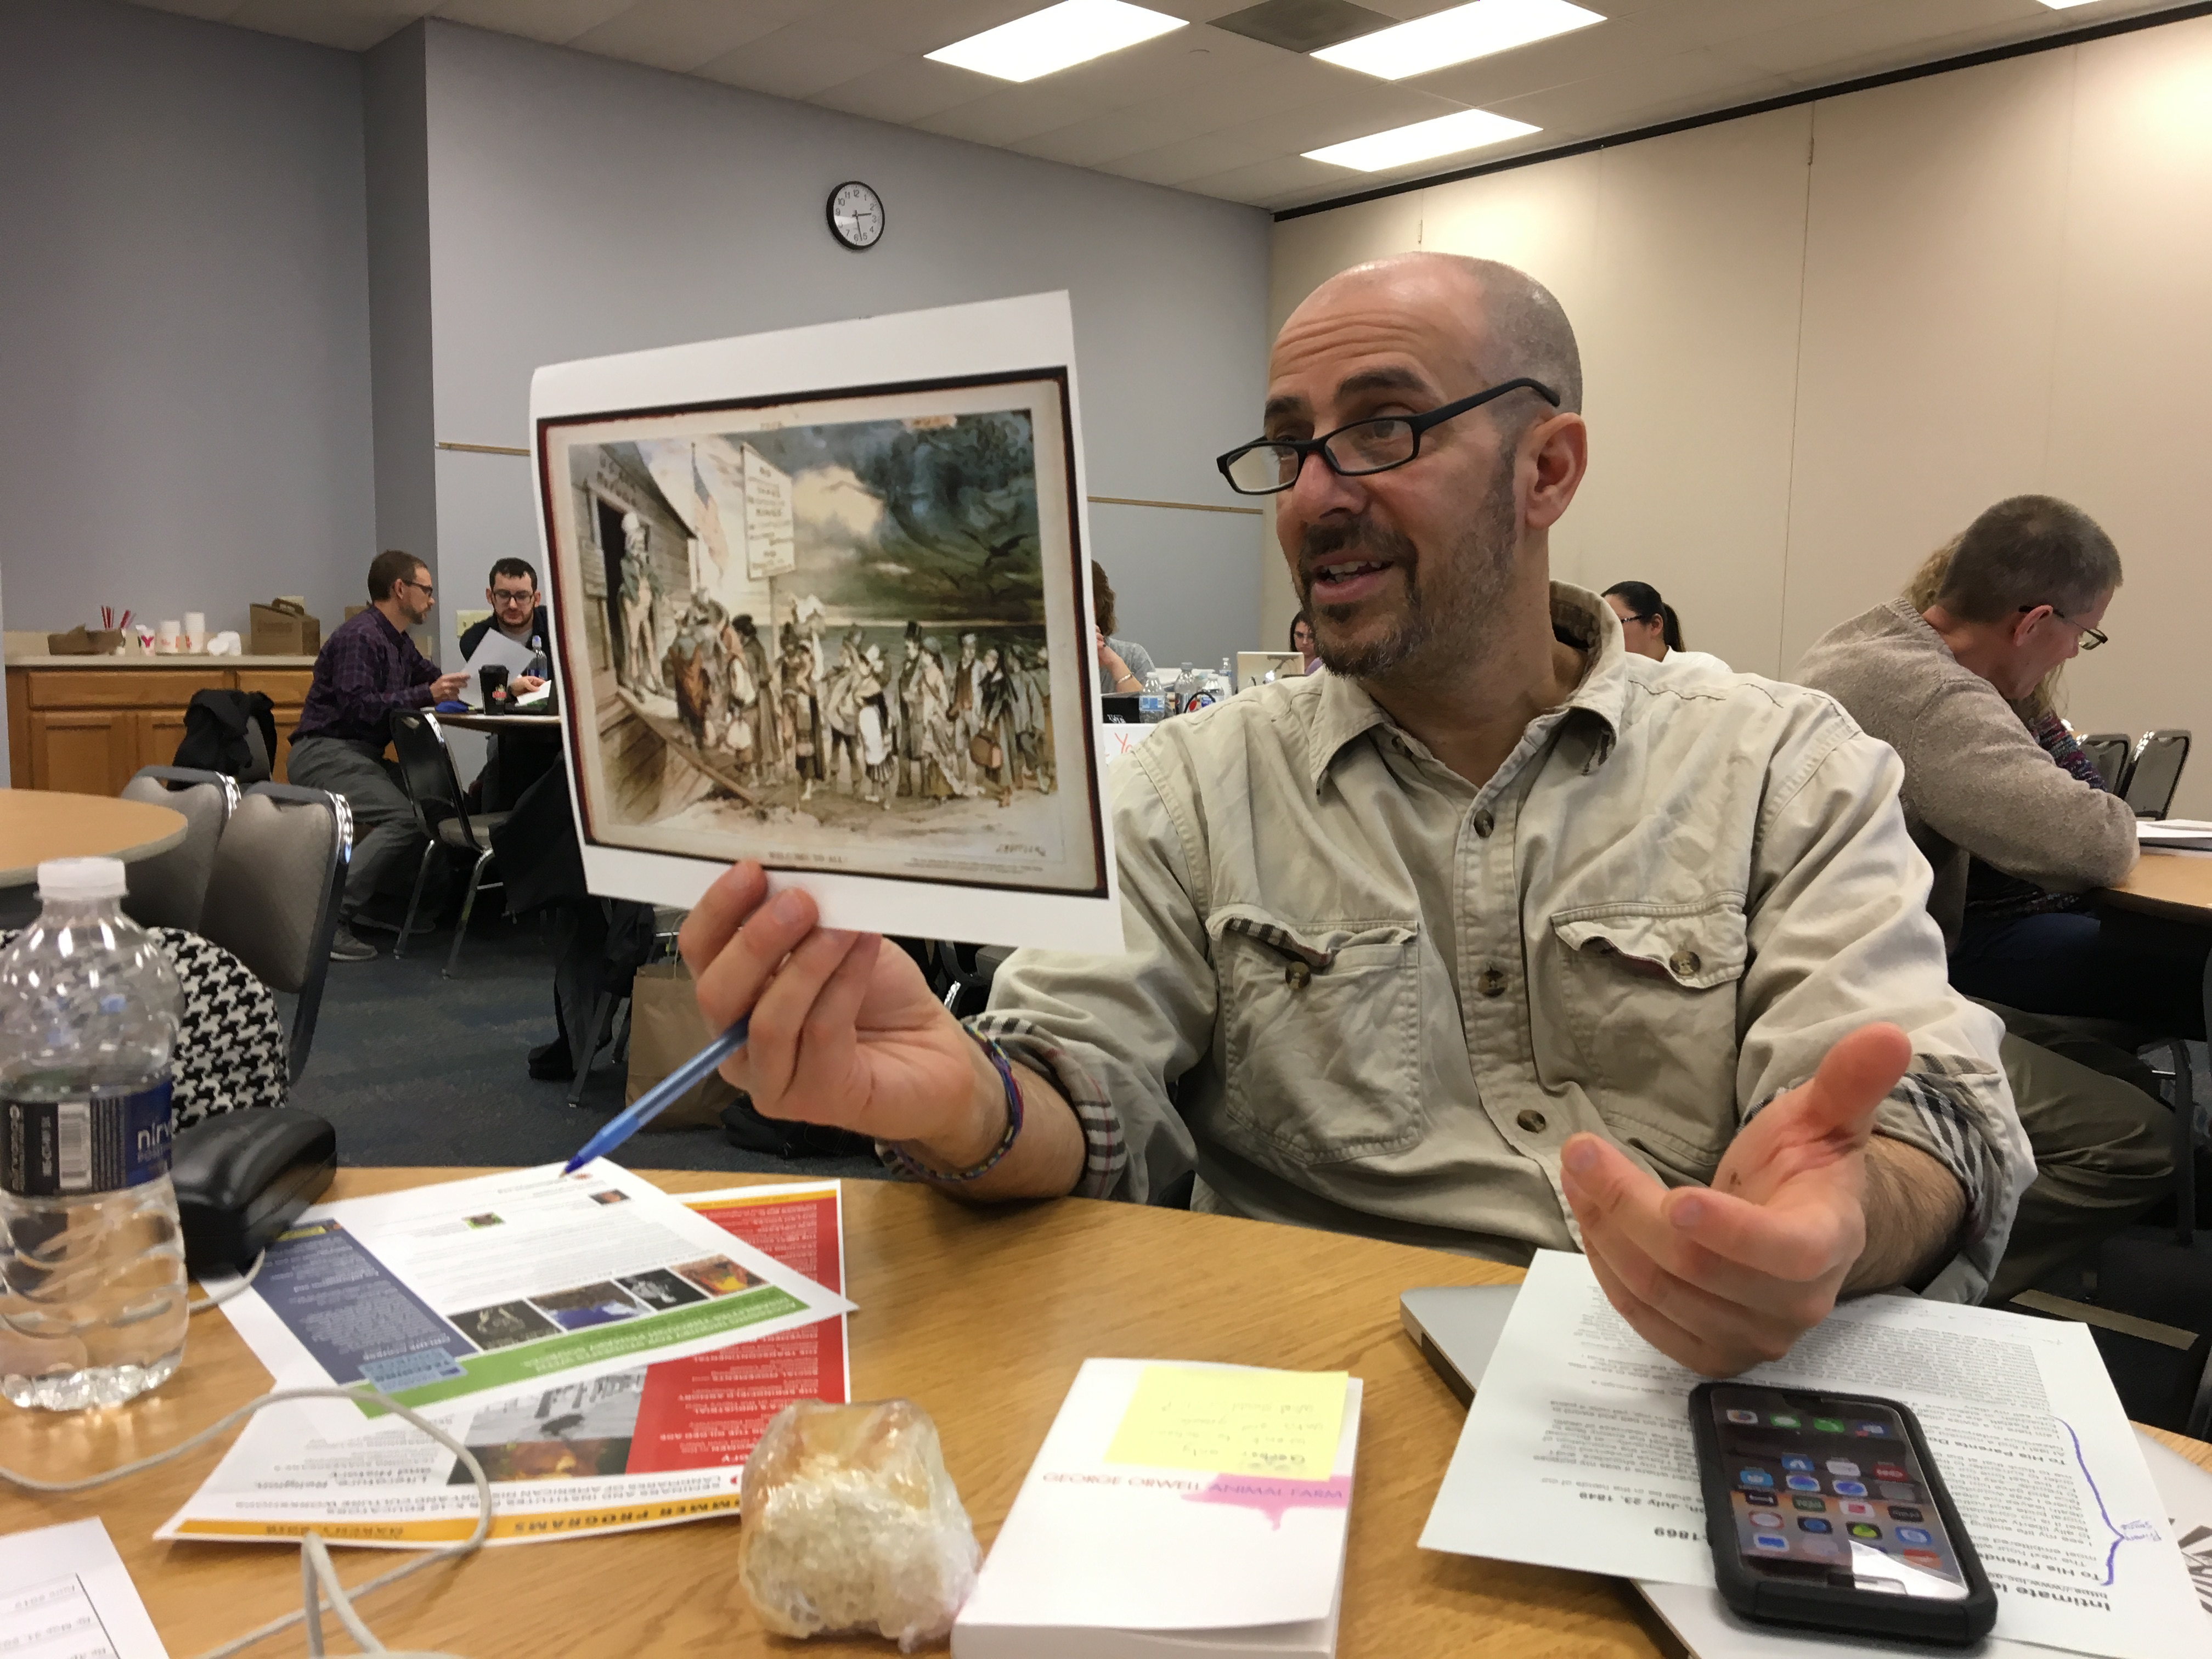 Man holds up a color print of an 19th c. cartoon as he gestures with his free hand.